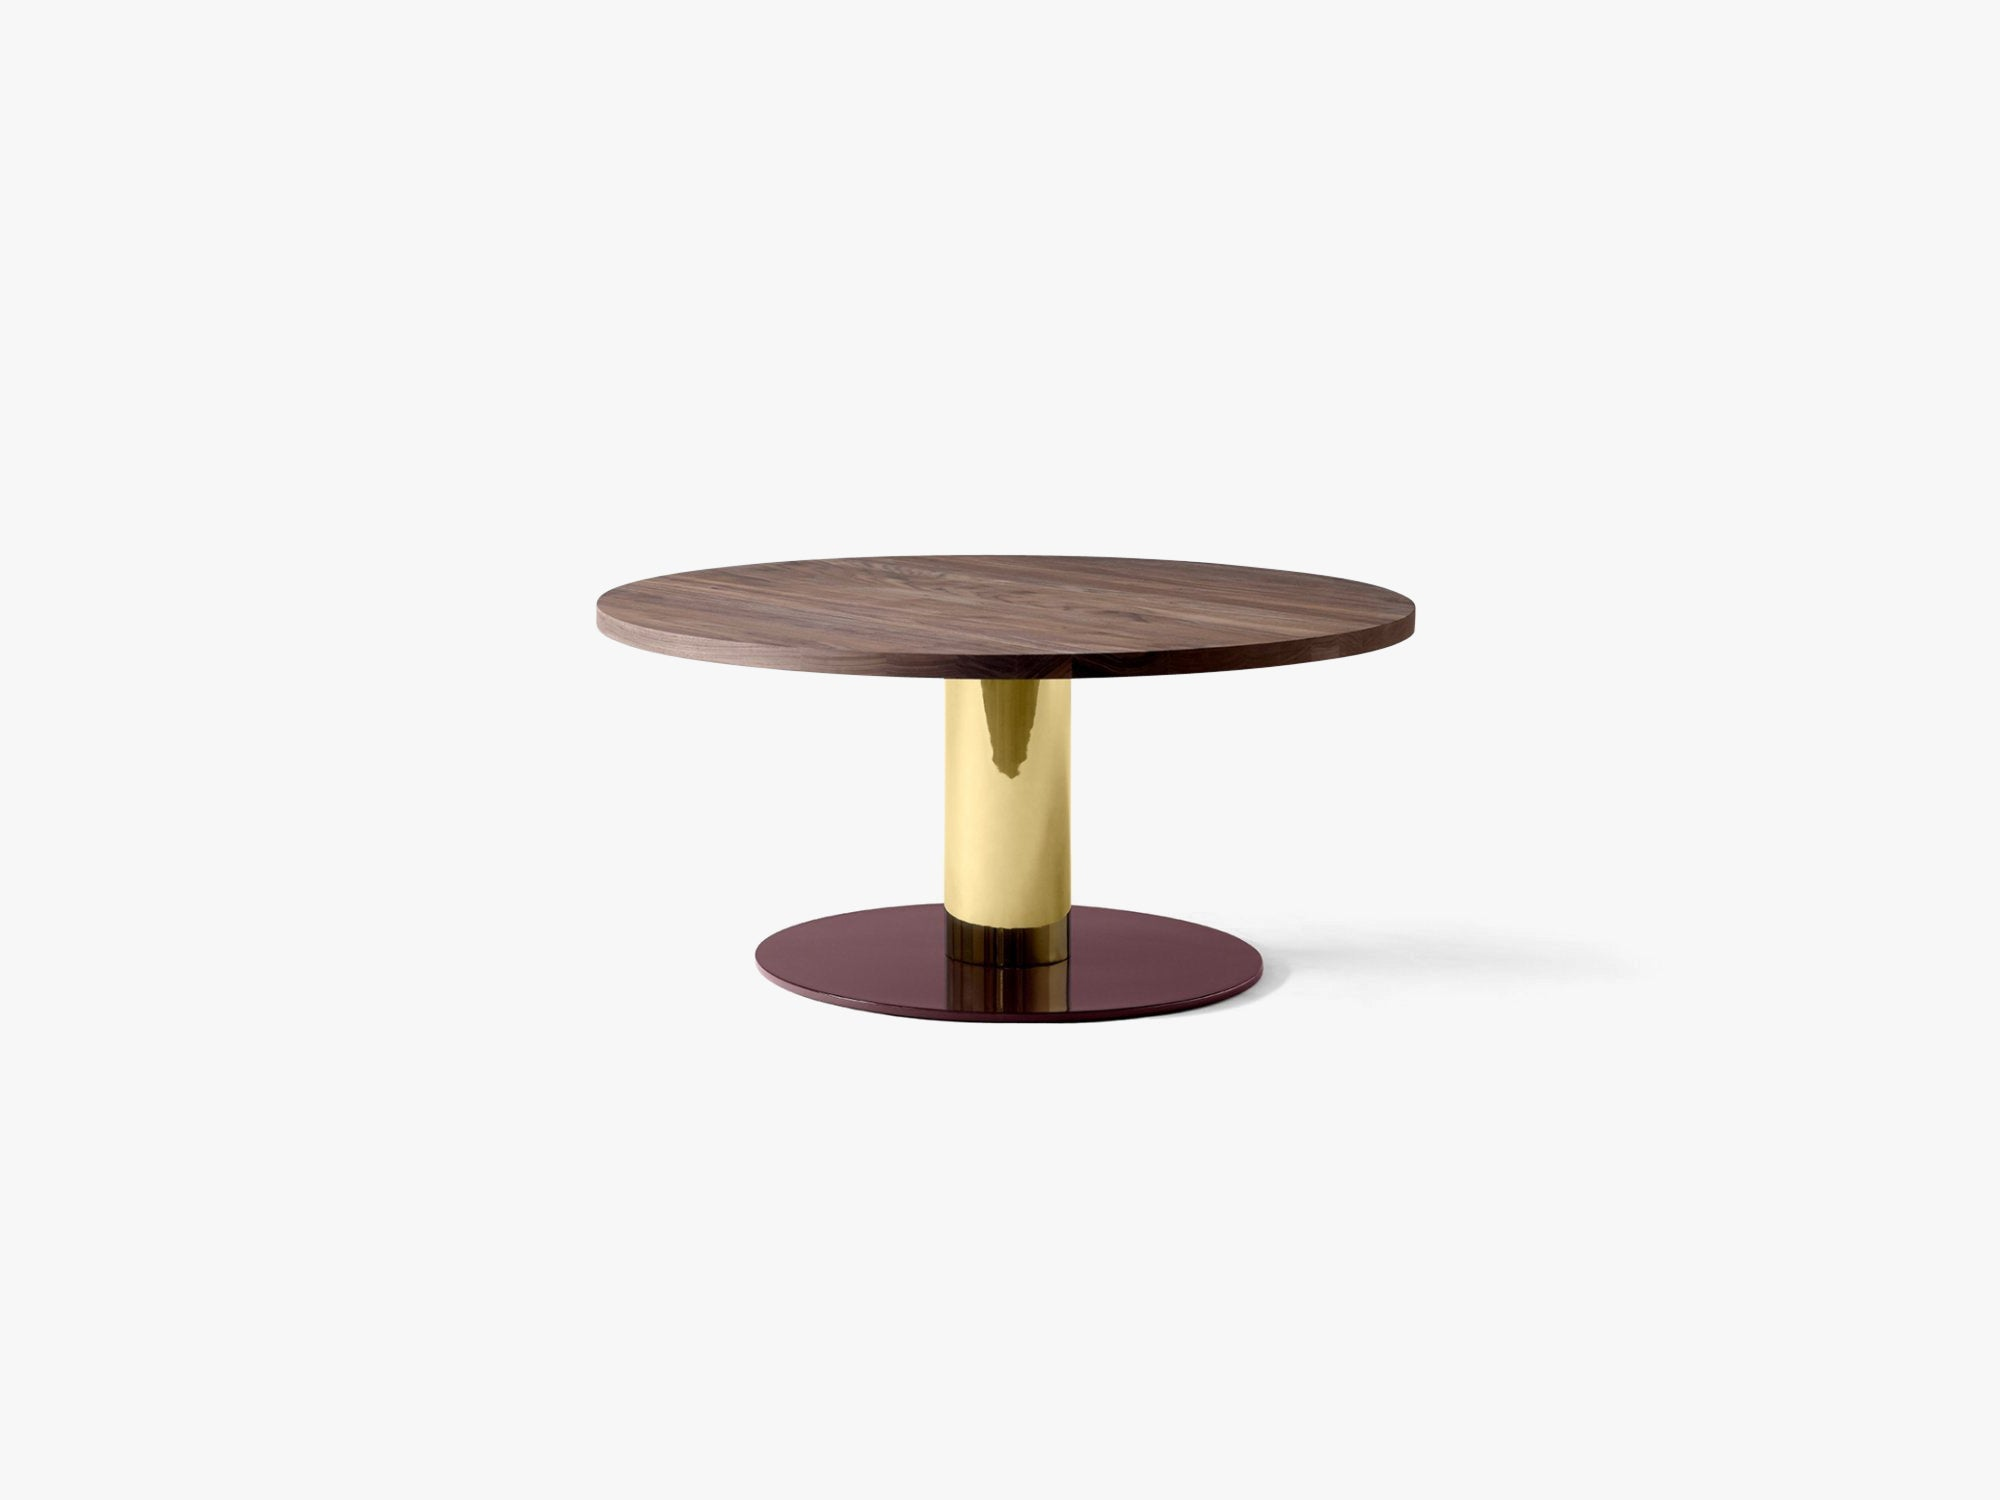 Mezcla - JH20, Brass/Walnut - Lounge table fra &tradition